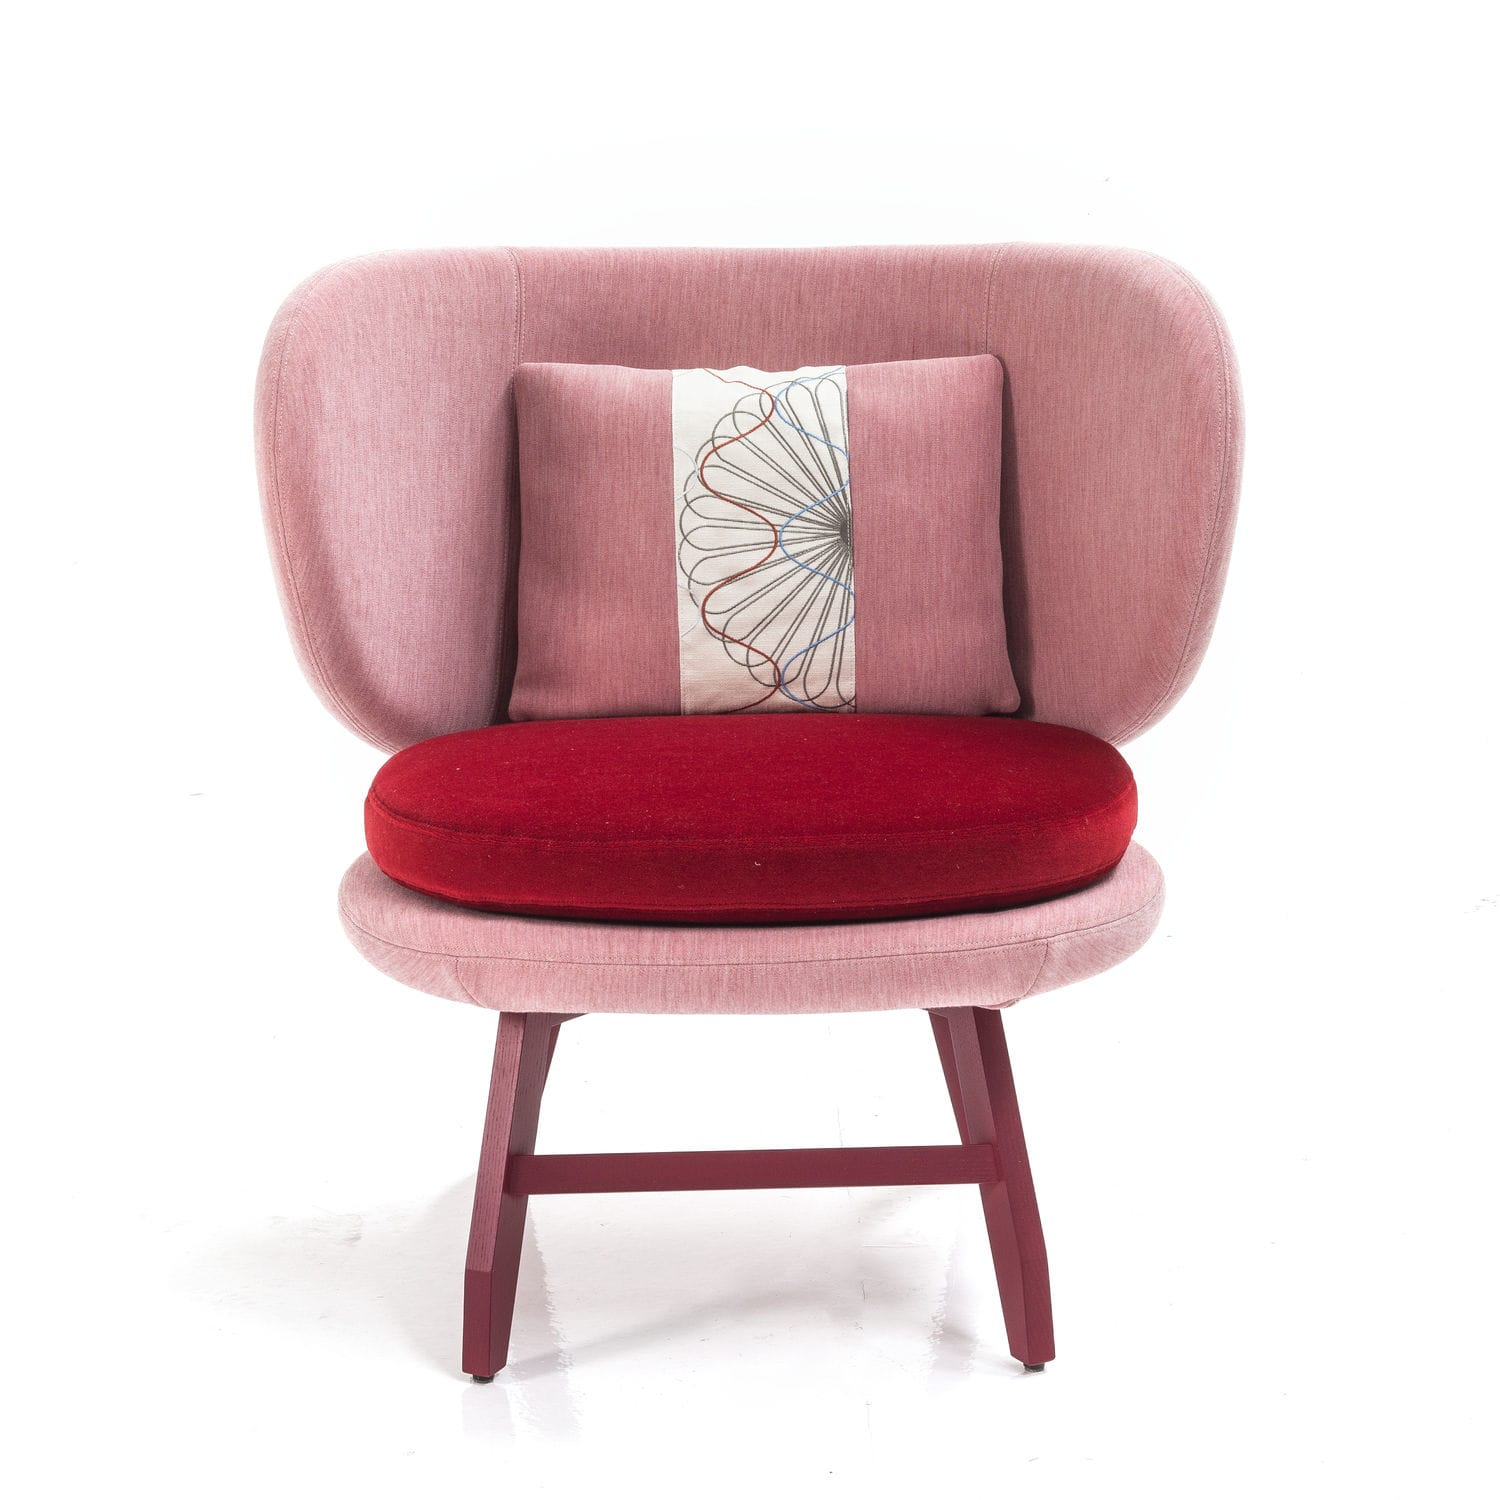 Attirant Contemporary Visitor Armchair / Fabric   SUSHI : ARIEL By Edward Van Vliet